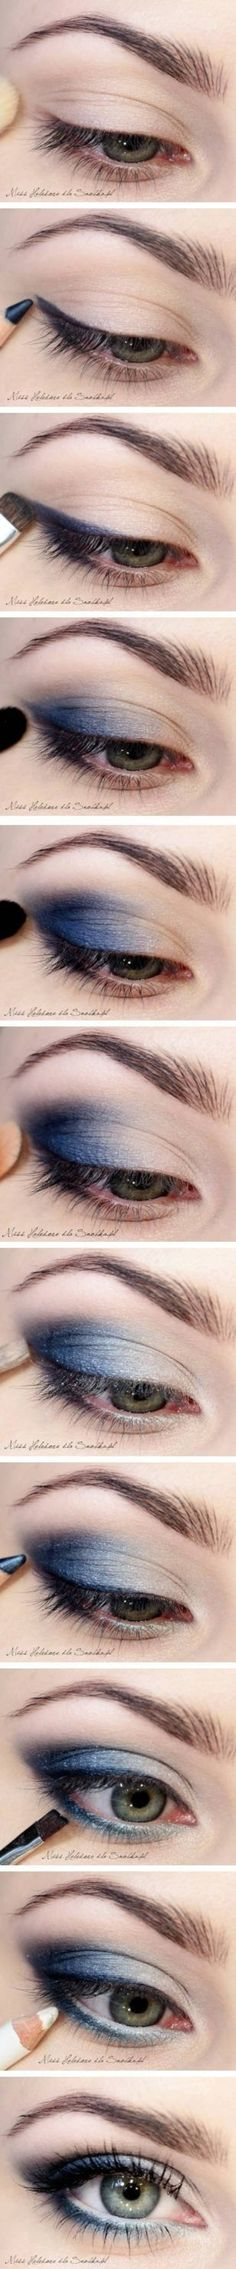 Tutorial for Navy Smokey Eye